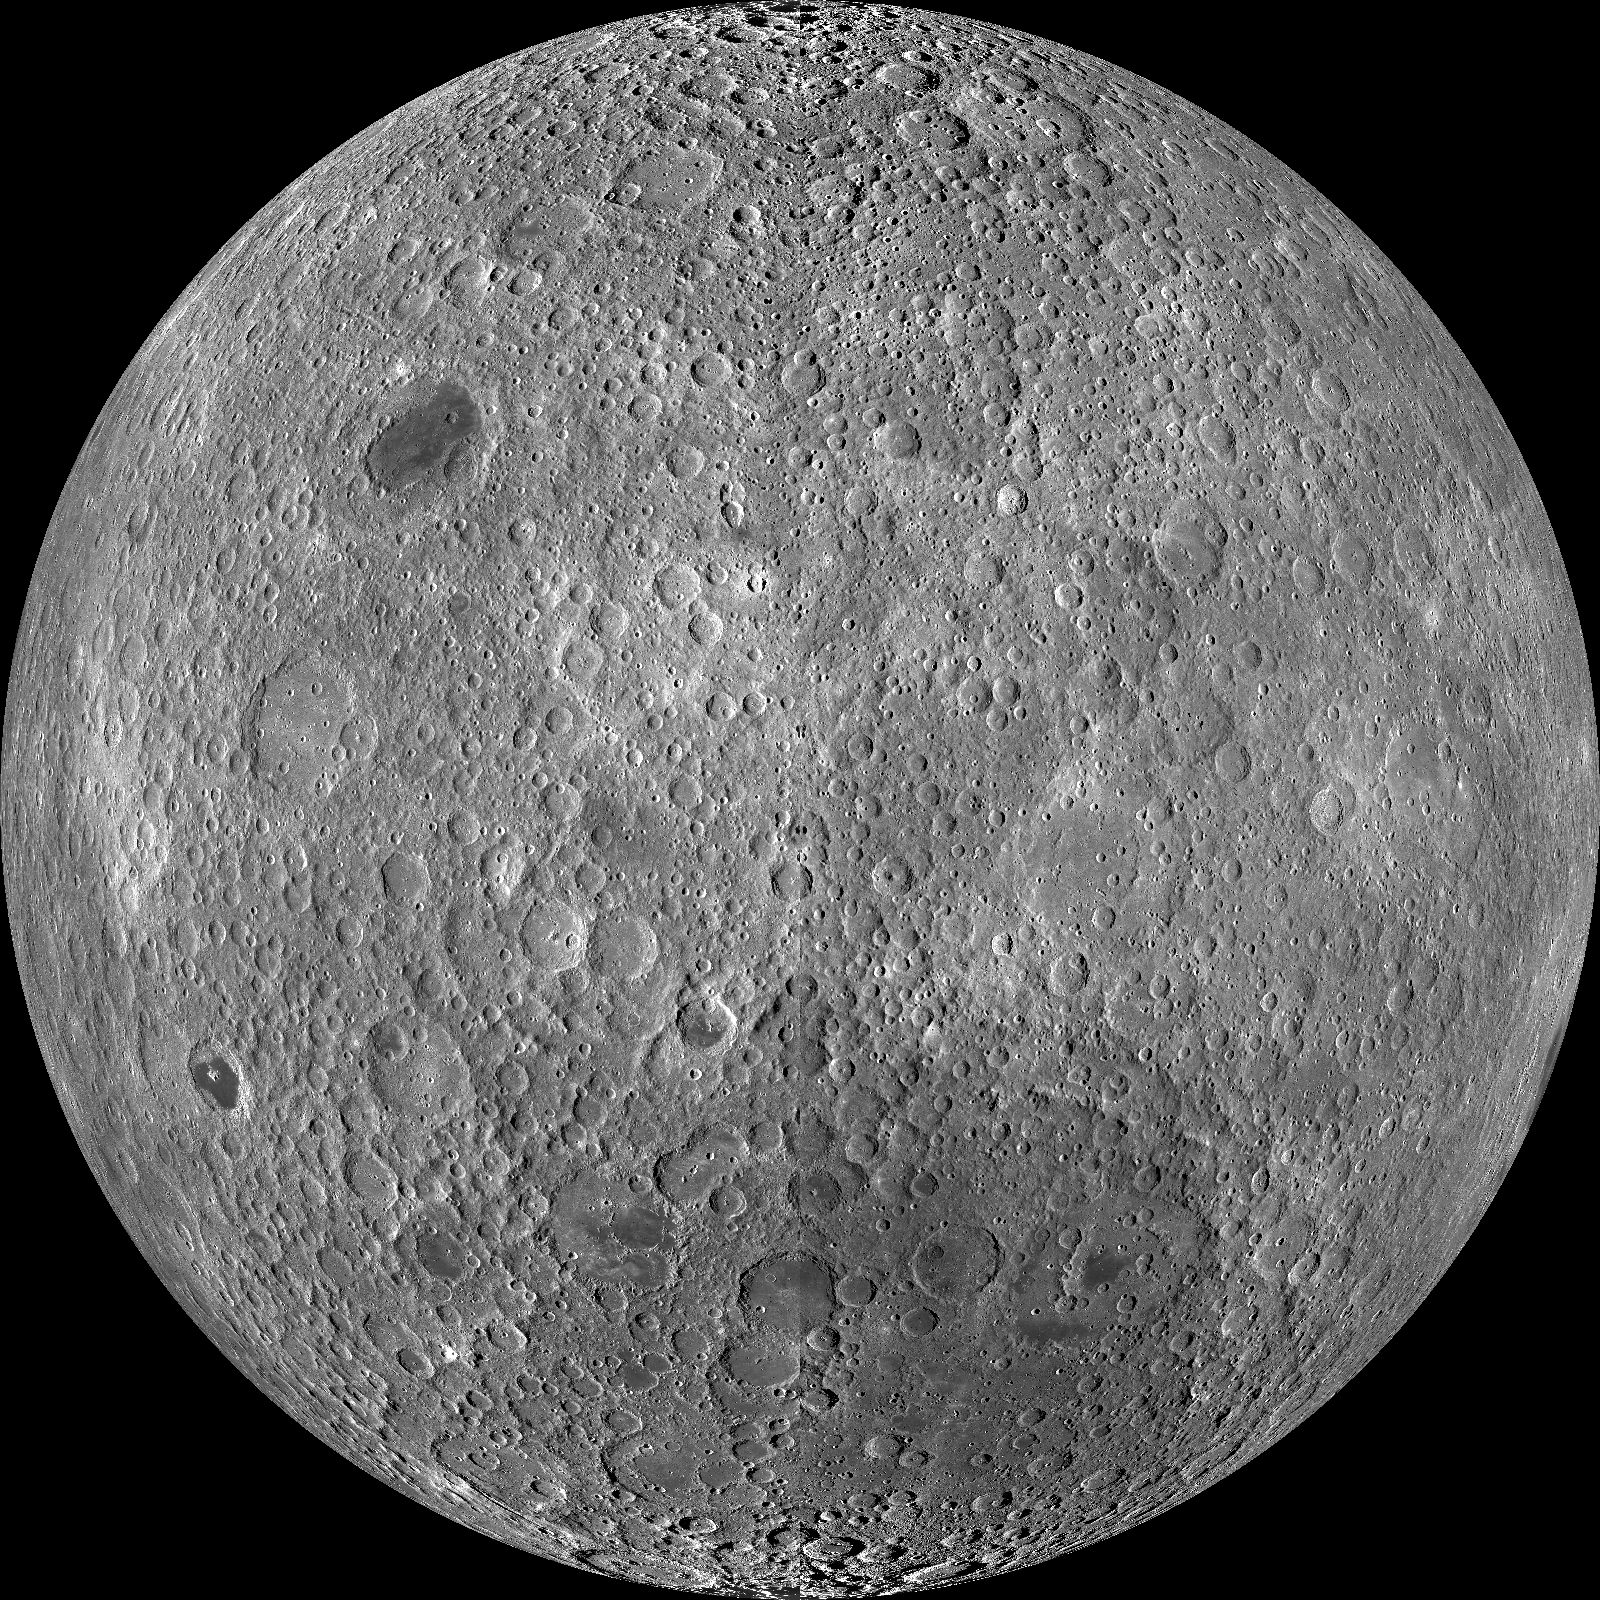 20 Most Marvelous Moon Missions